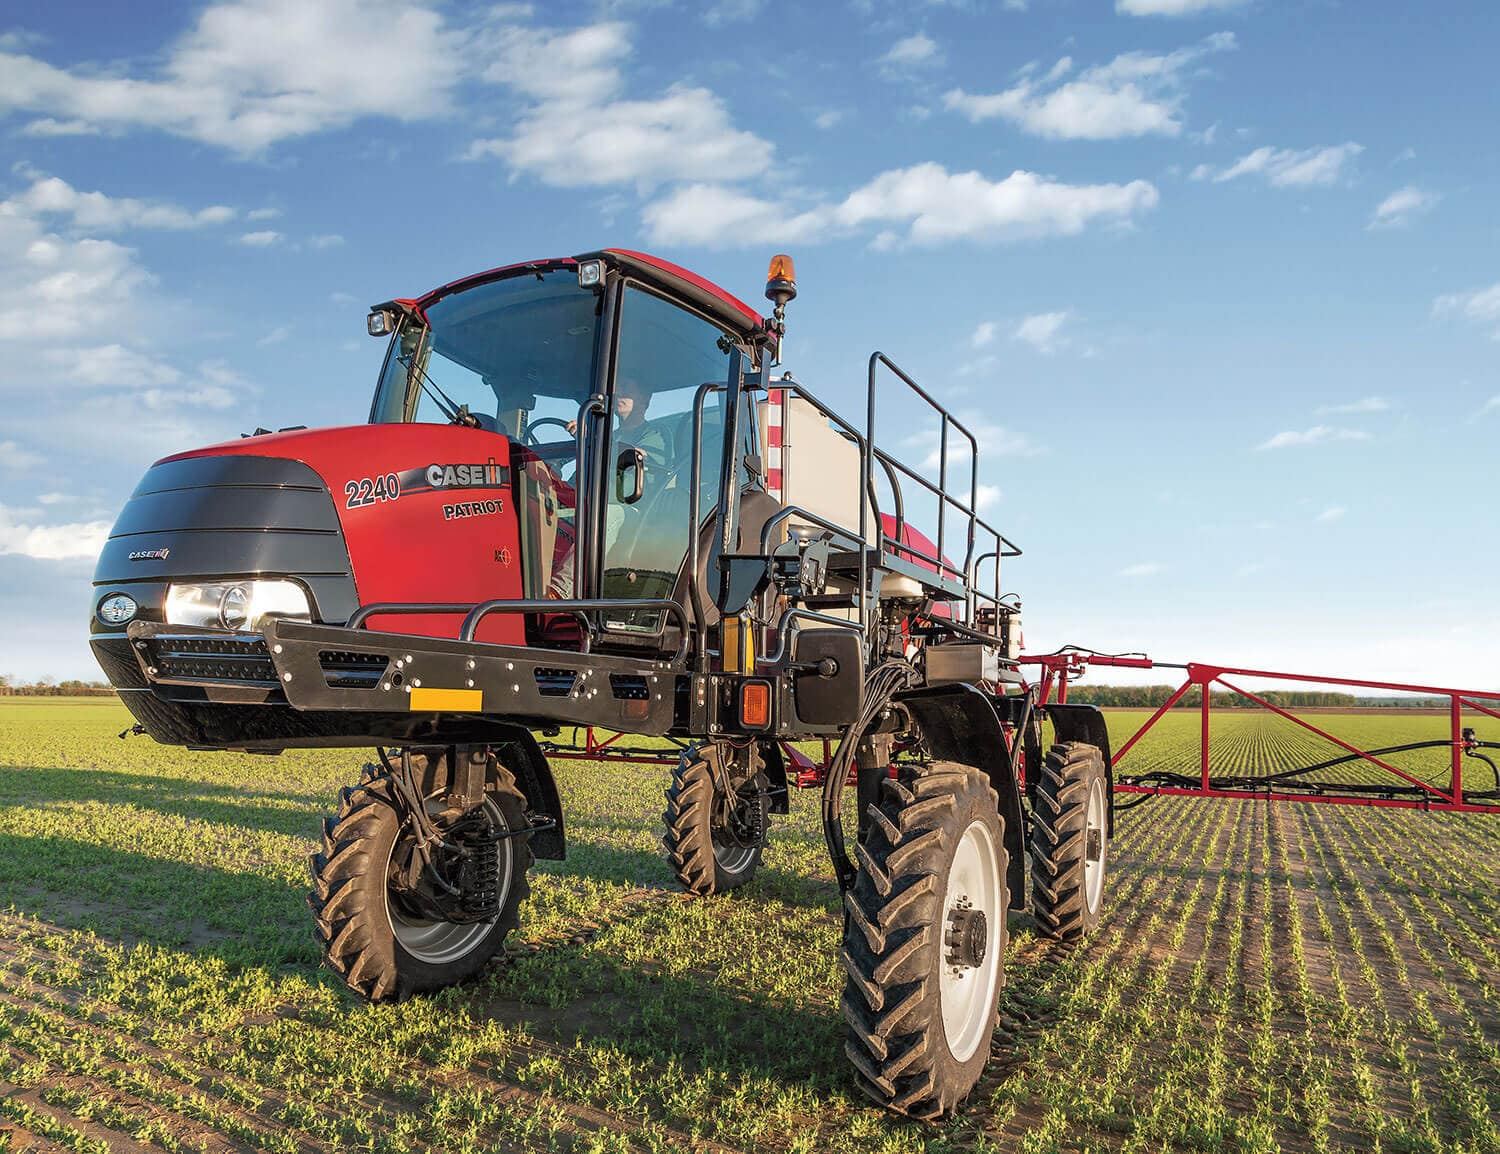 patriot features 03?width=500&height=300 patriot� series sprayers case ih  at gsmportal.co